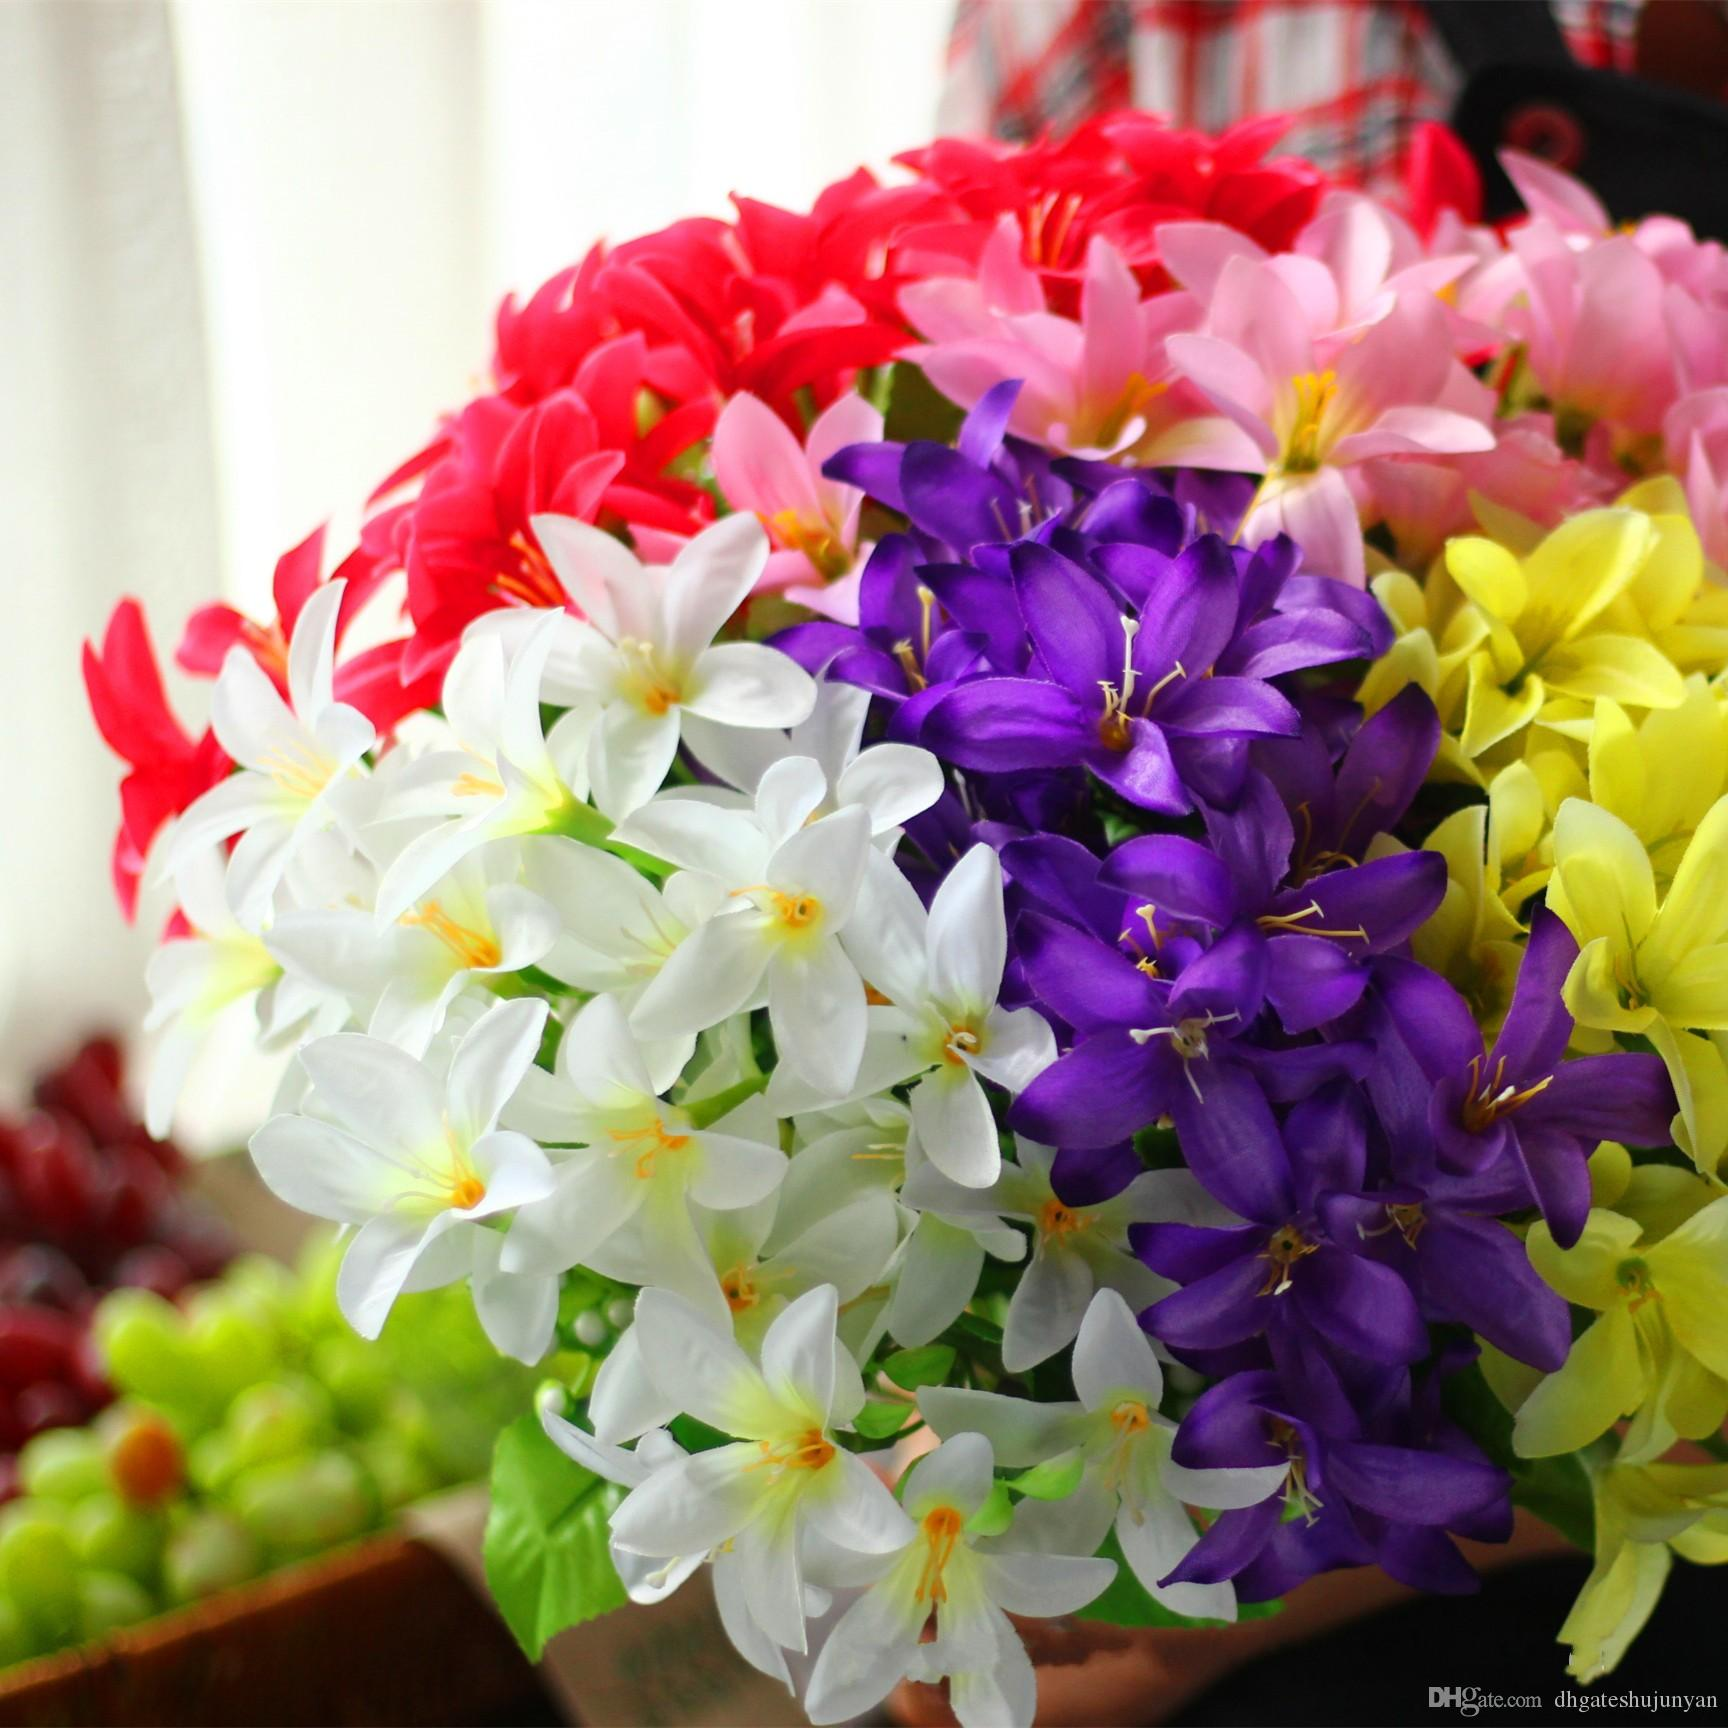 Discount artificial flower fake mini lily 30 heads bouquet craft discount artificial flower fake mini lily 30 heads bouquet craft wedding arrangement christmas home decoration from china dhgate izmirmasajfo Image collections